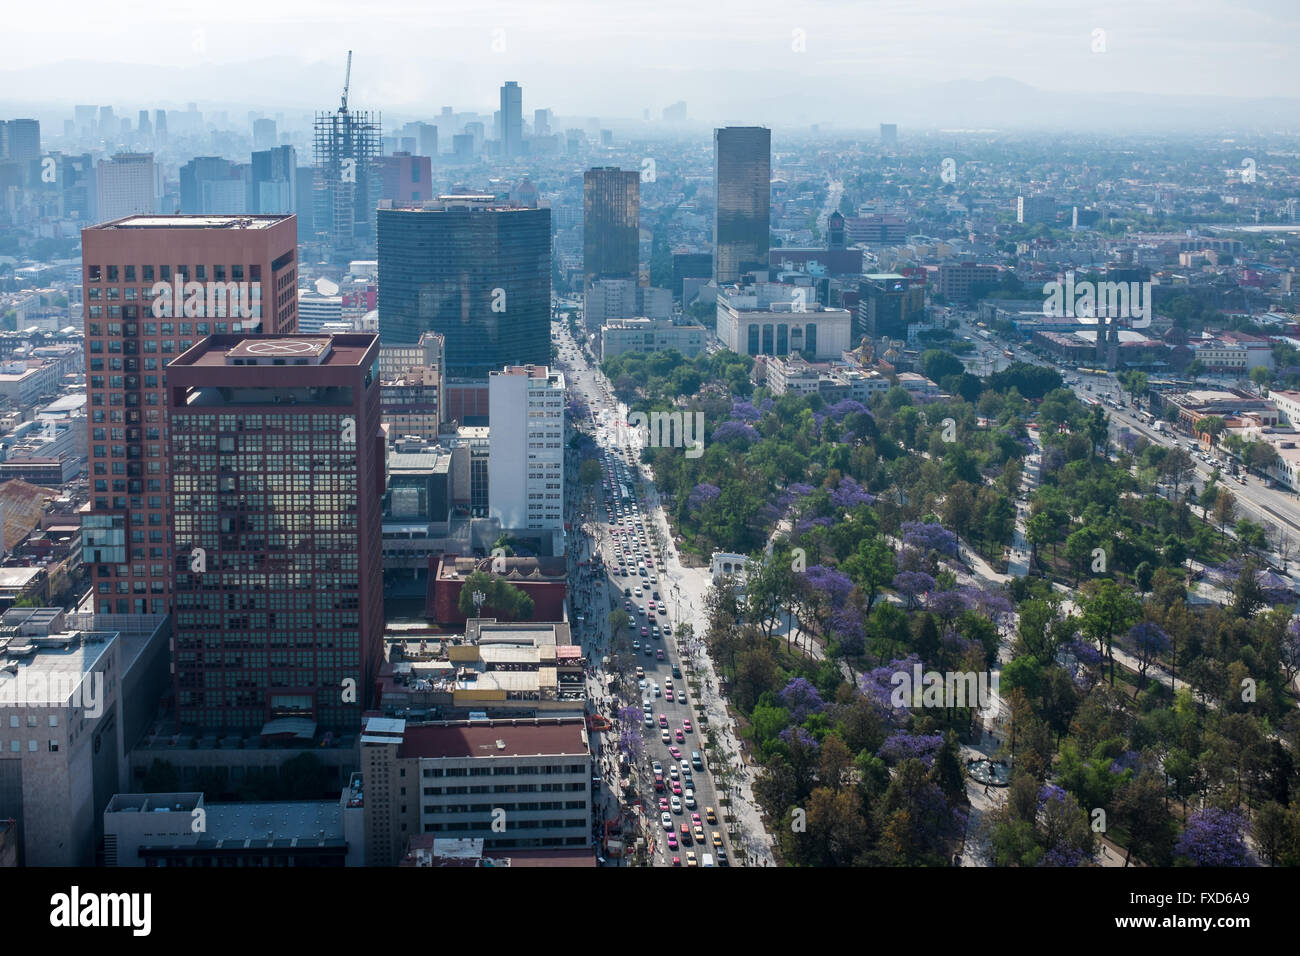 View from the torre Latinoamericana in Mexico City - Stock Image